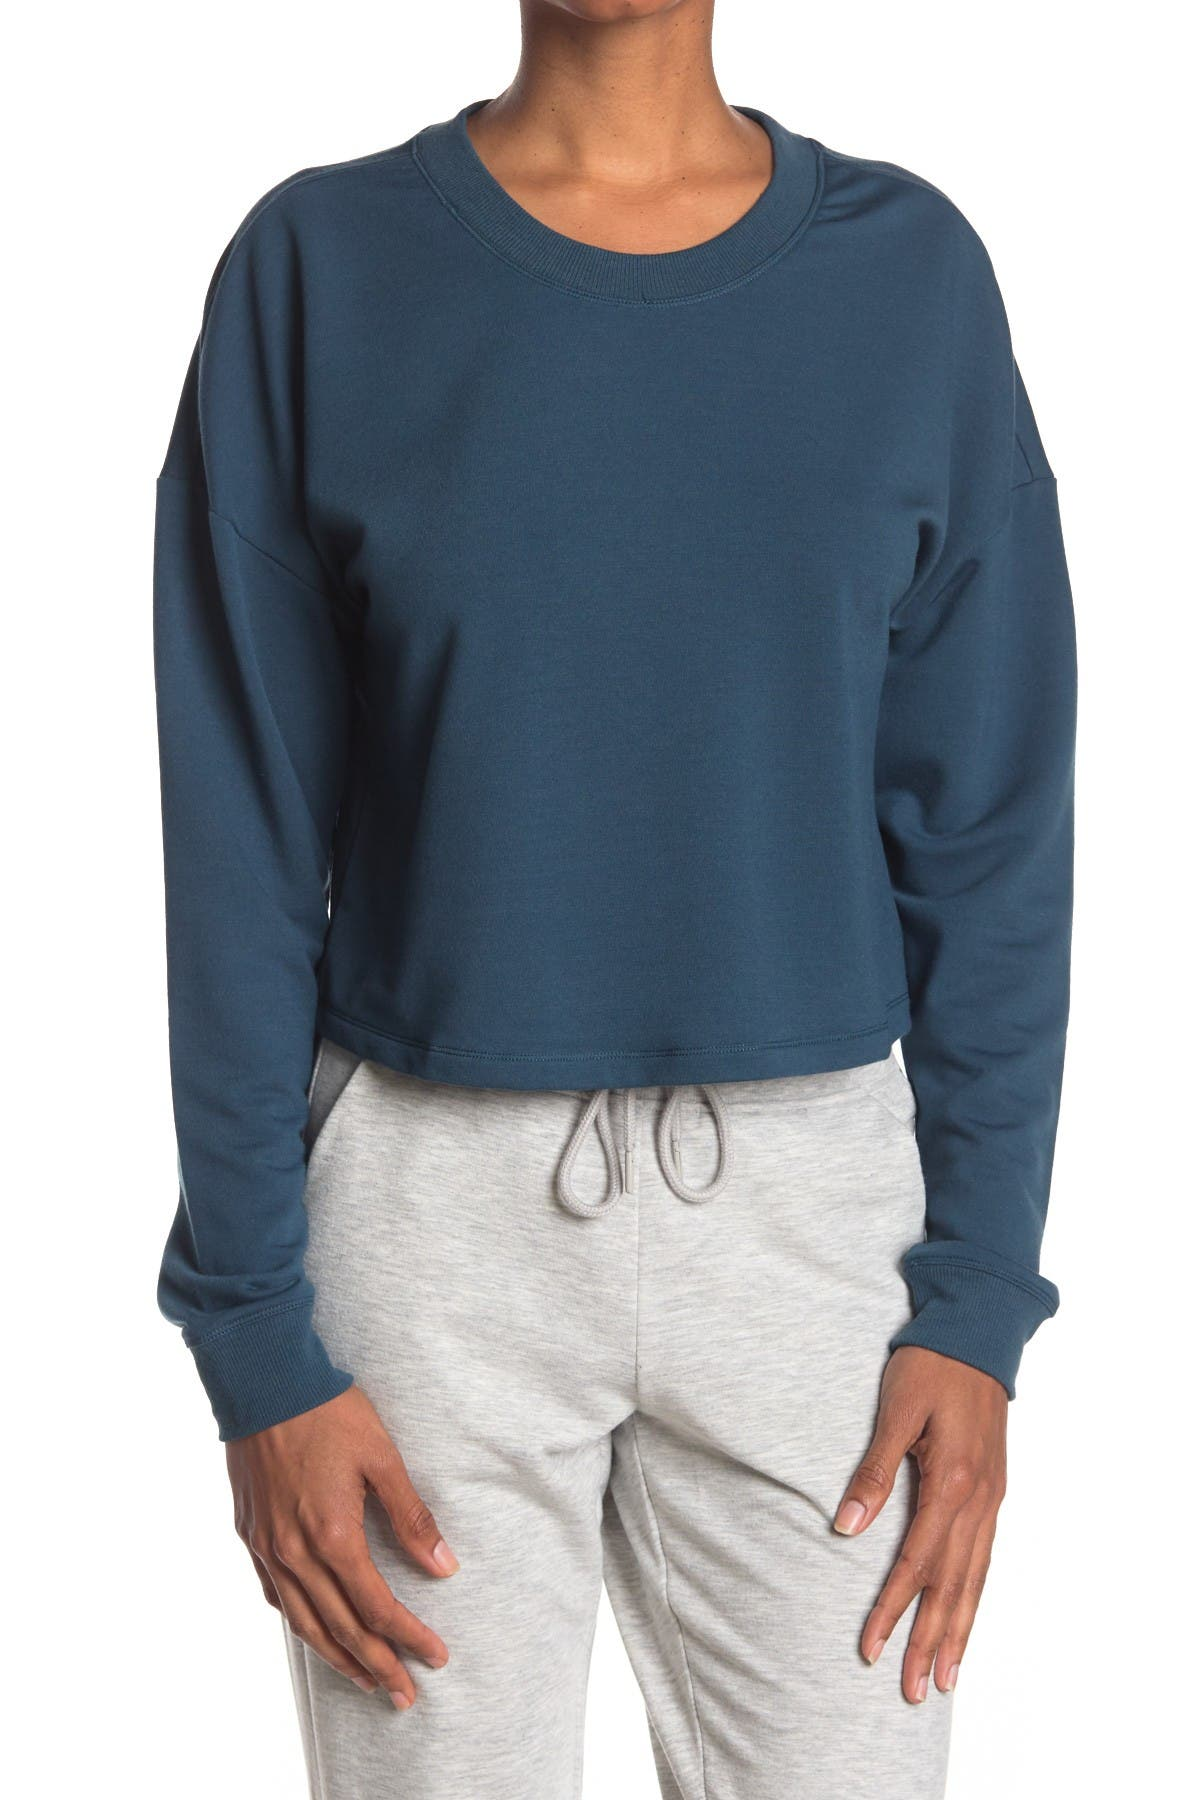 Image of 90 Degree By Reflex Terry Brushed Solid Cropped Sweatshirt